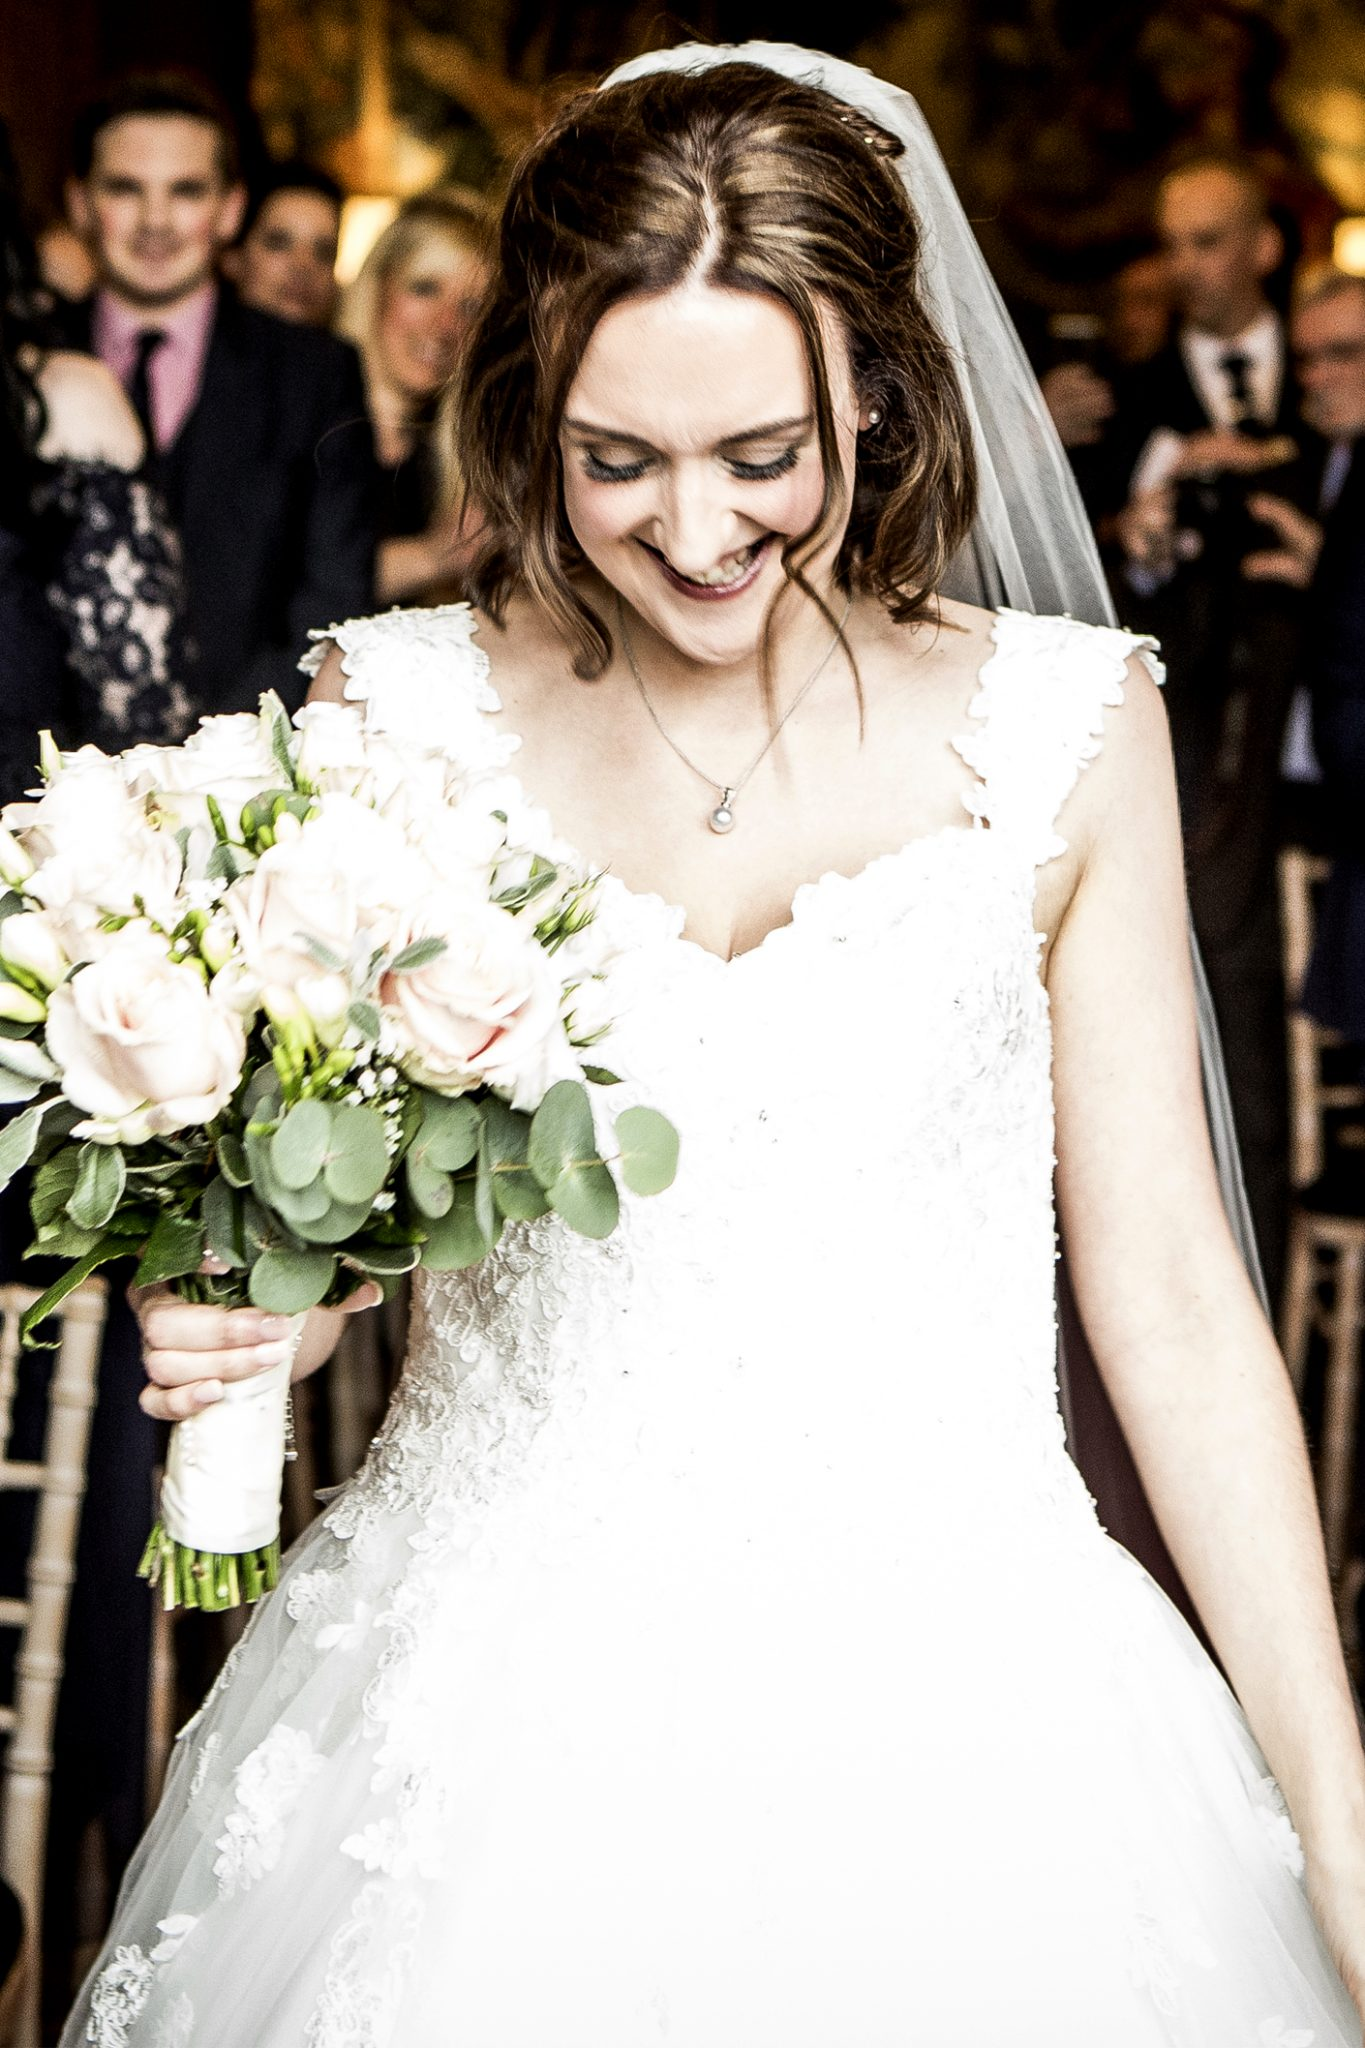 photography-of-the-bride-at-the-wedding-ceremony-at-the-thornton-manor-hotel